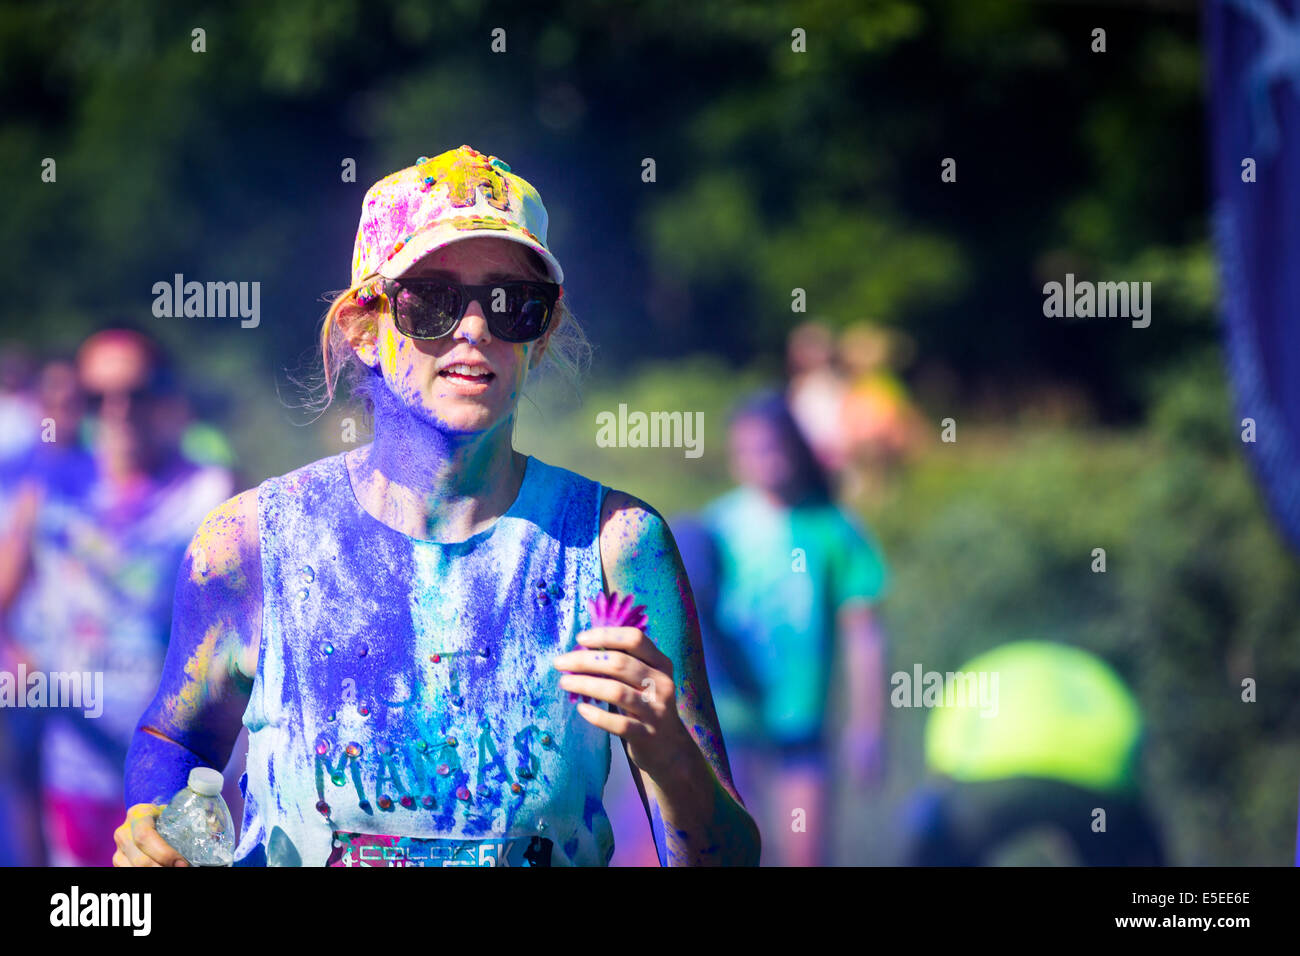 Young woman runs the Color Vibe 5K race - Stock Image